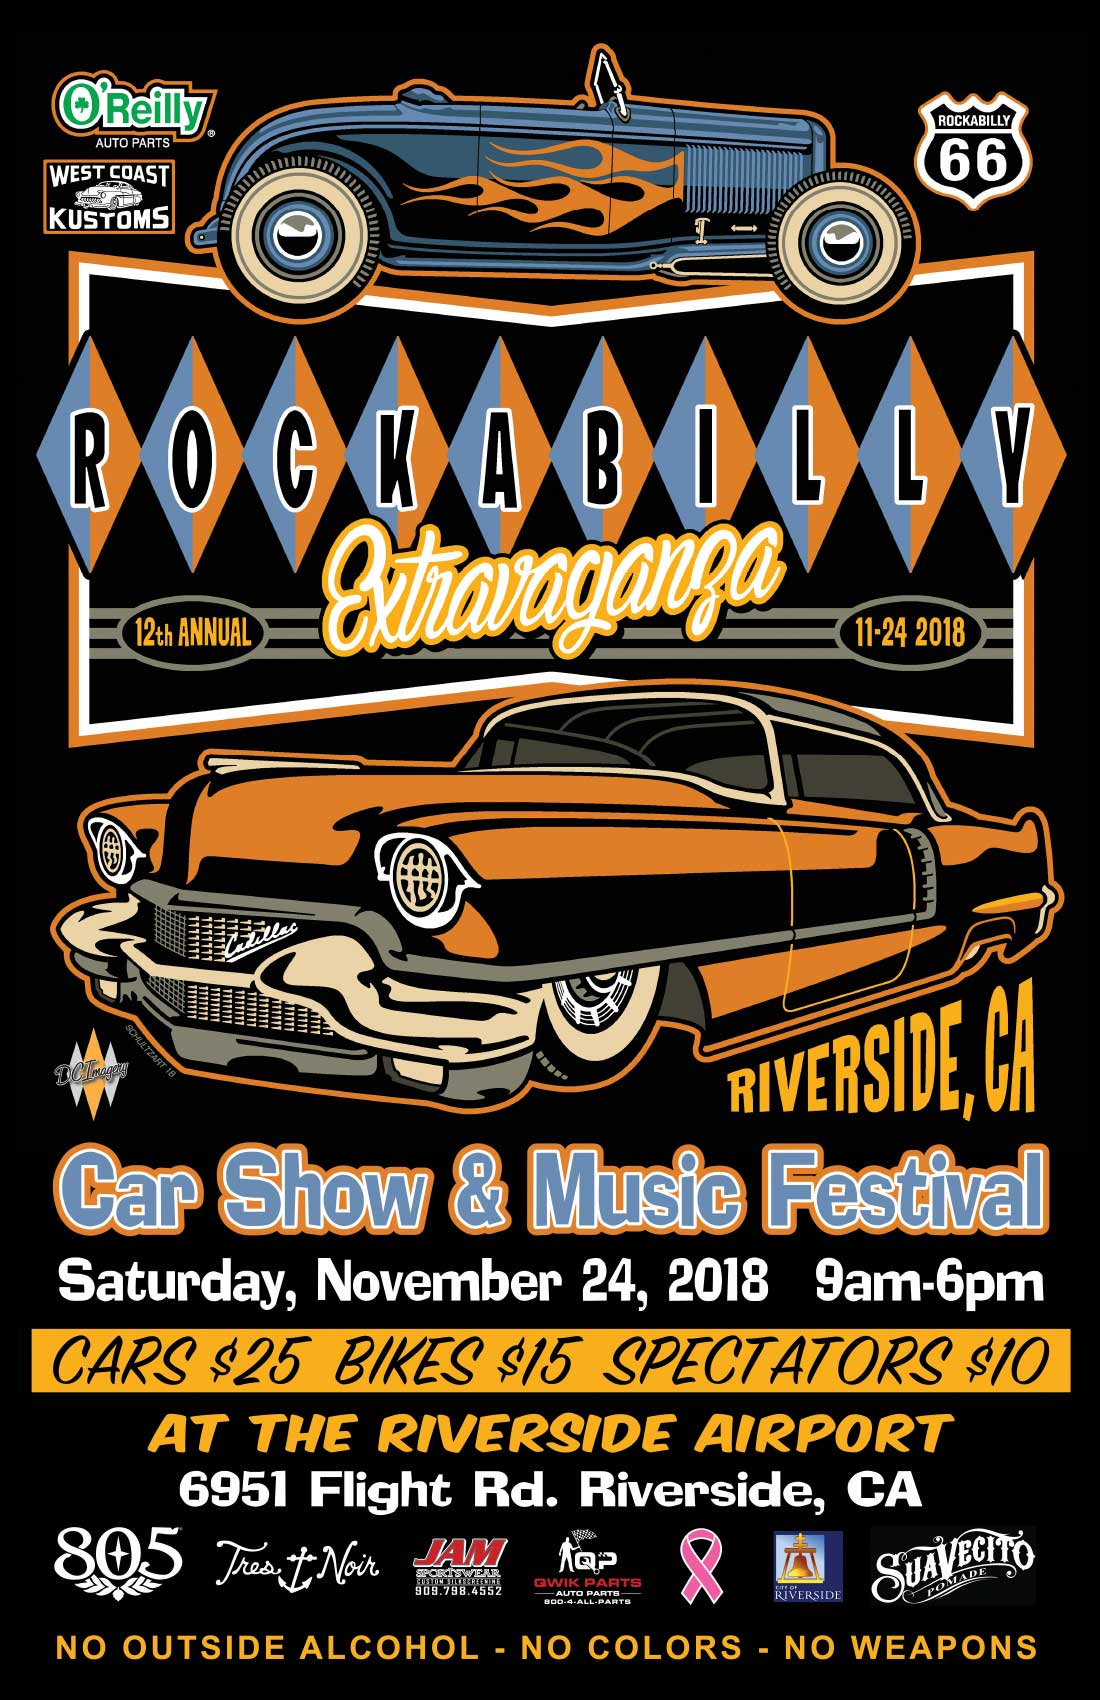 12th Annual Rockabilly Exravaganza